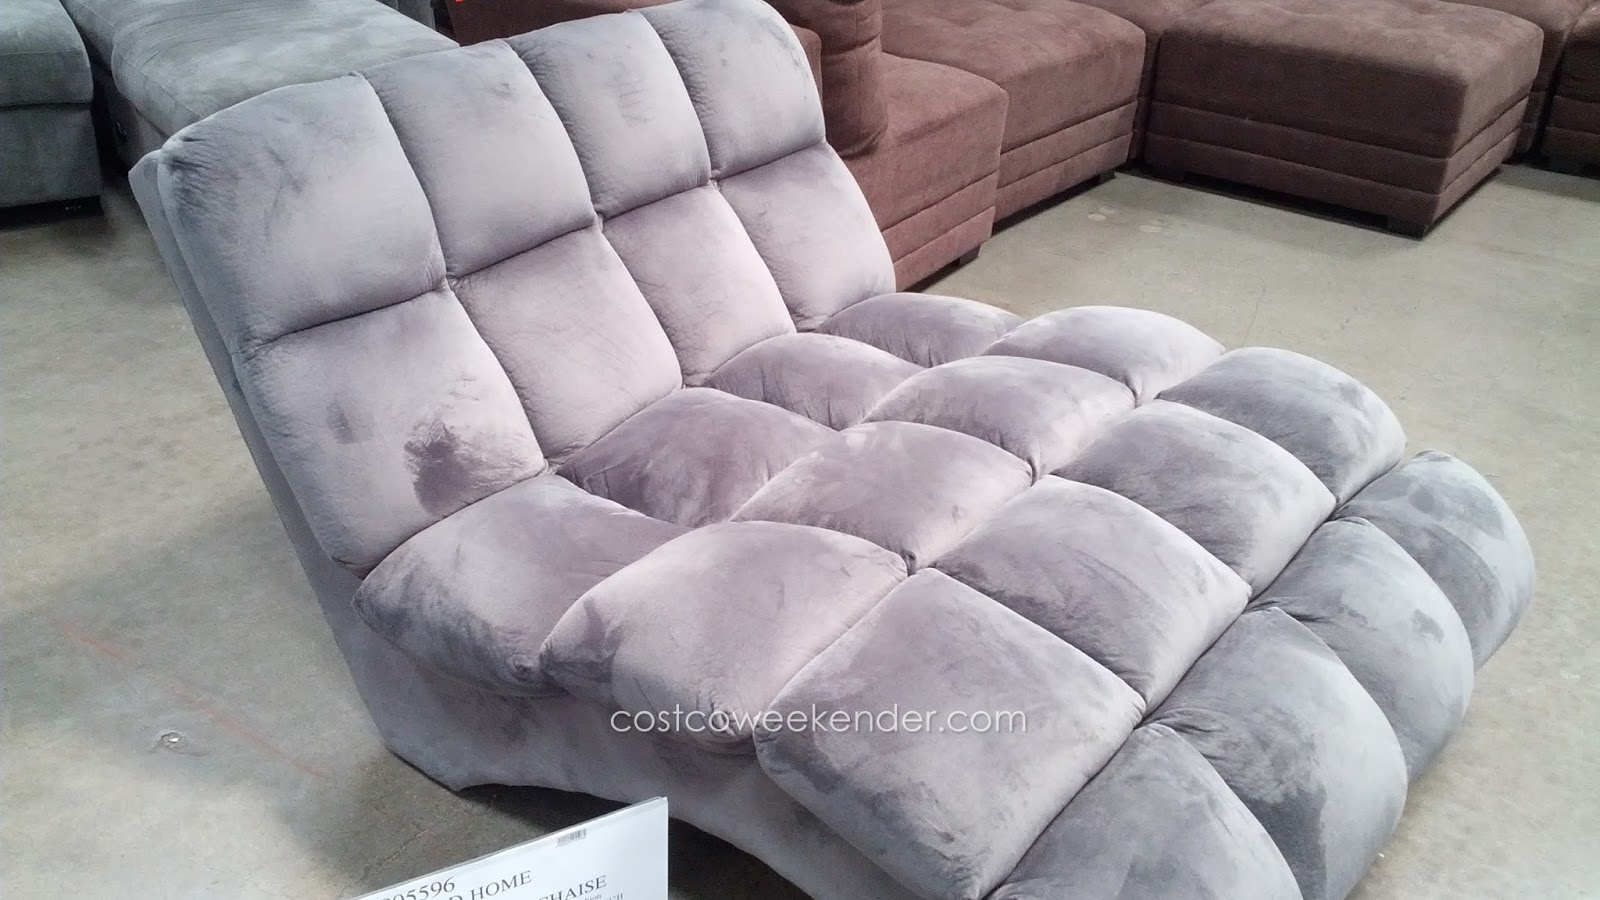 Emerald home boylston double chaise lounge costco weekender for Chaise lounge costco